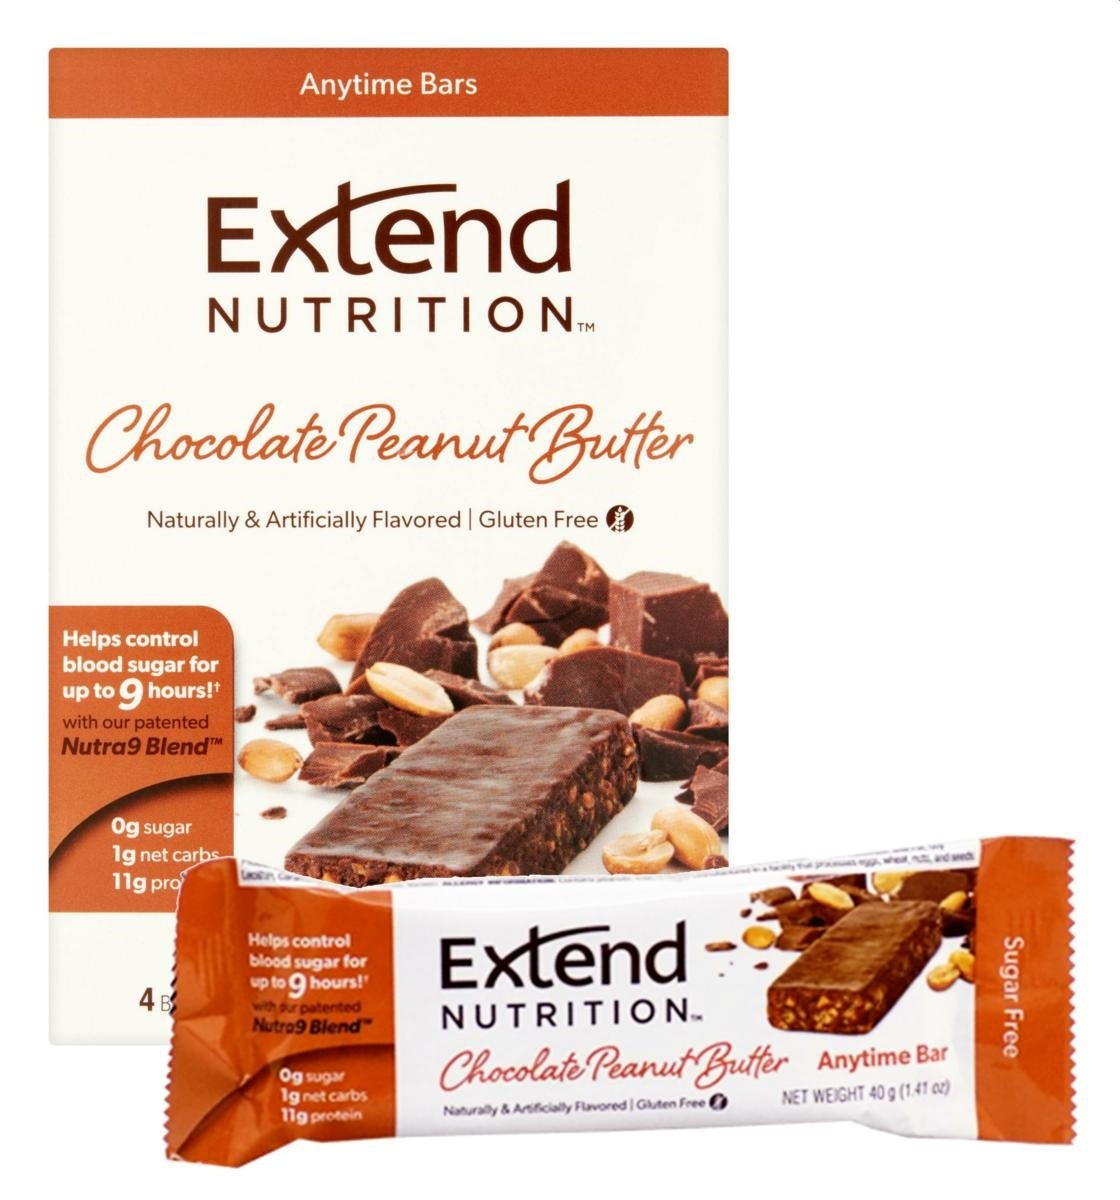 Extend Bar, Chocolate Peanut Butter, 1.41 oz. Bars (Pack of 15) by Extend